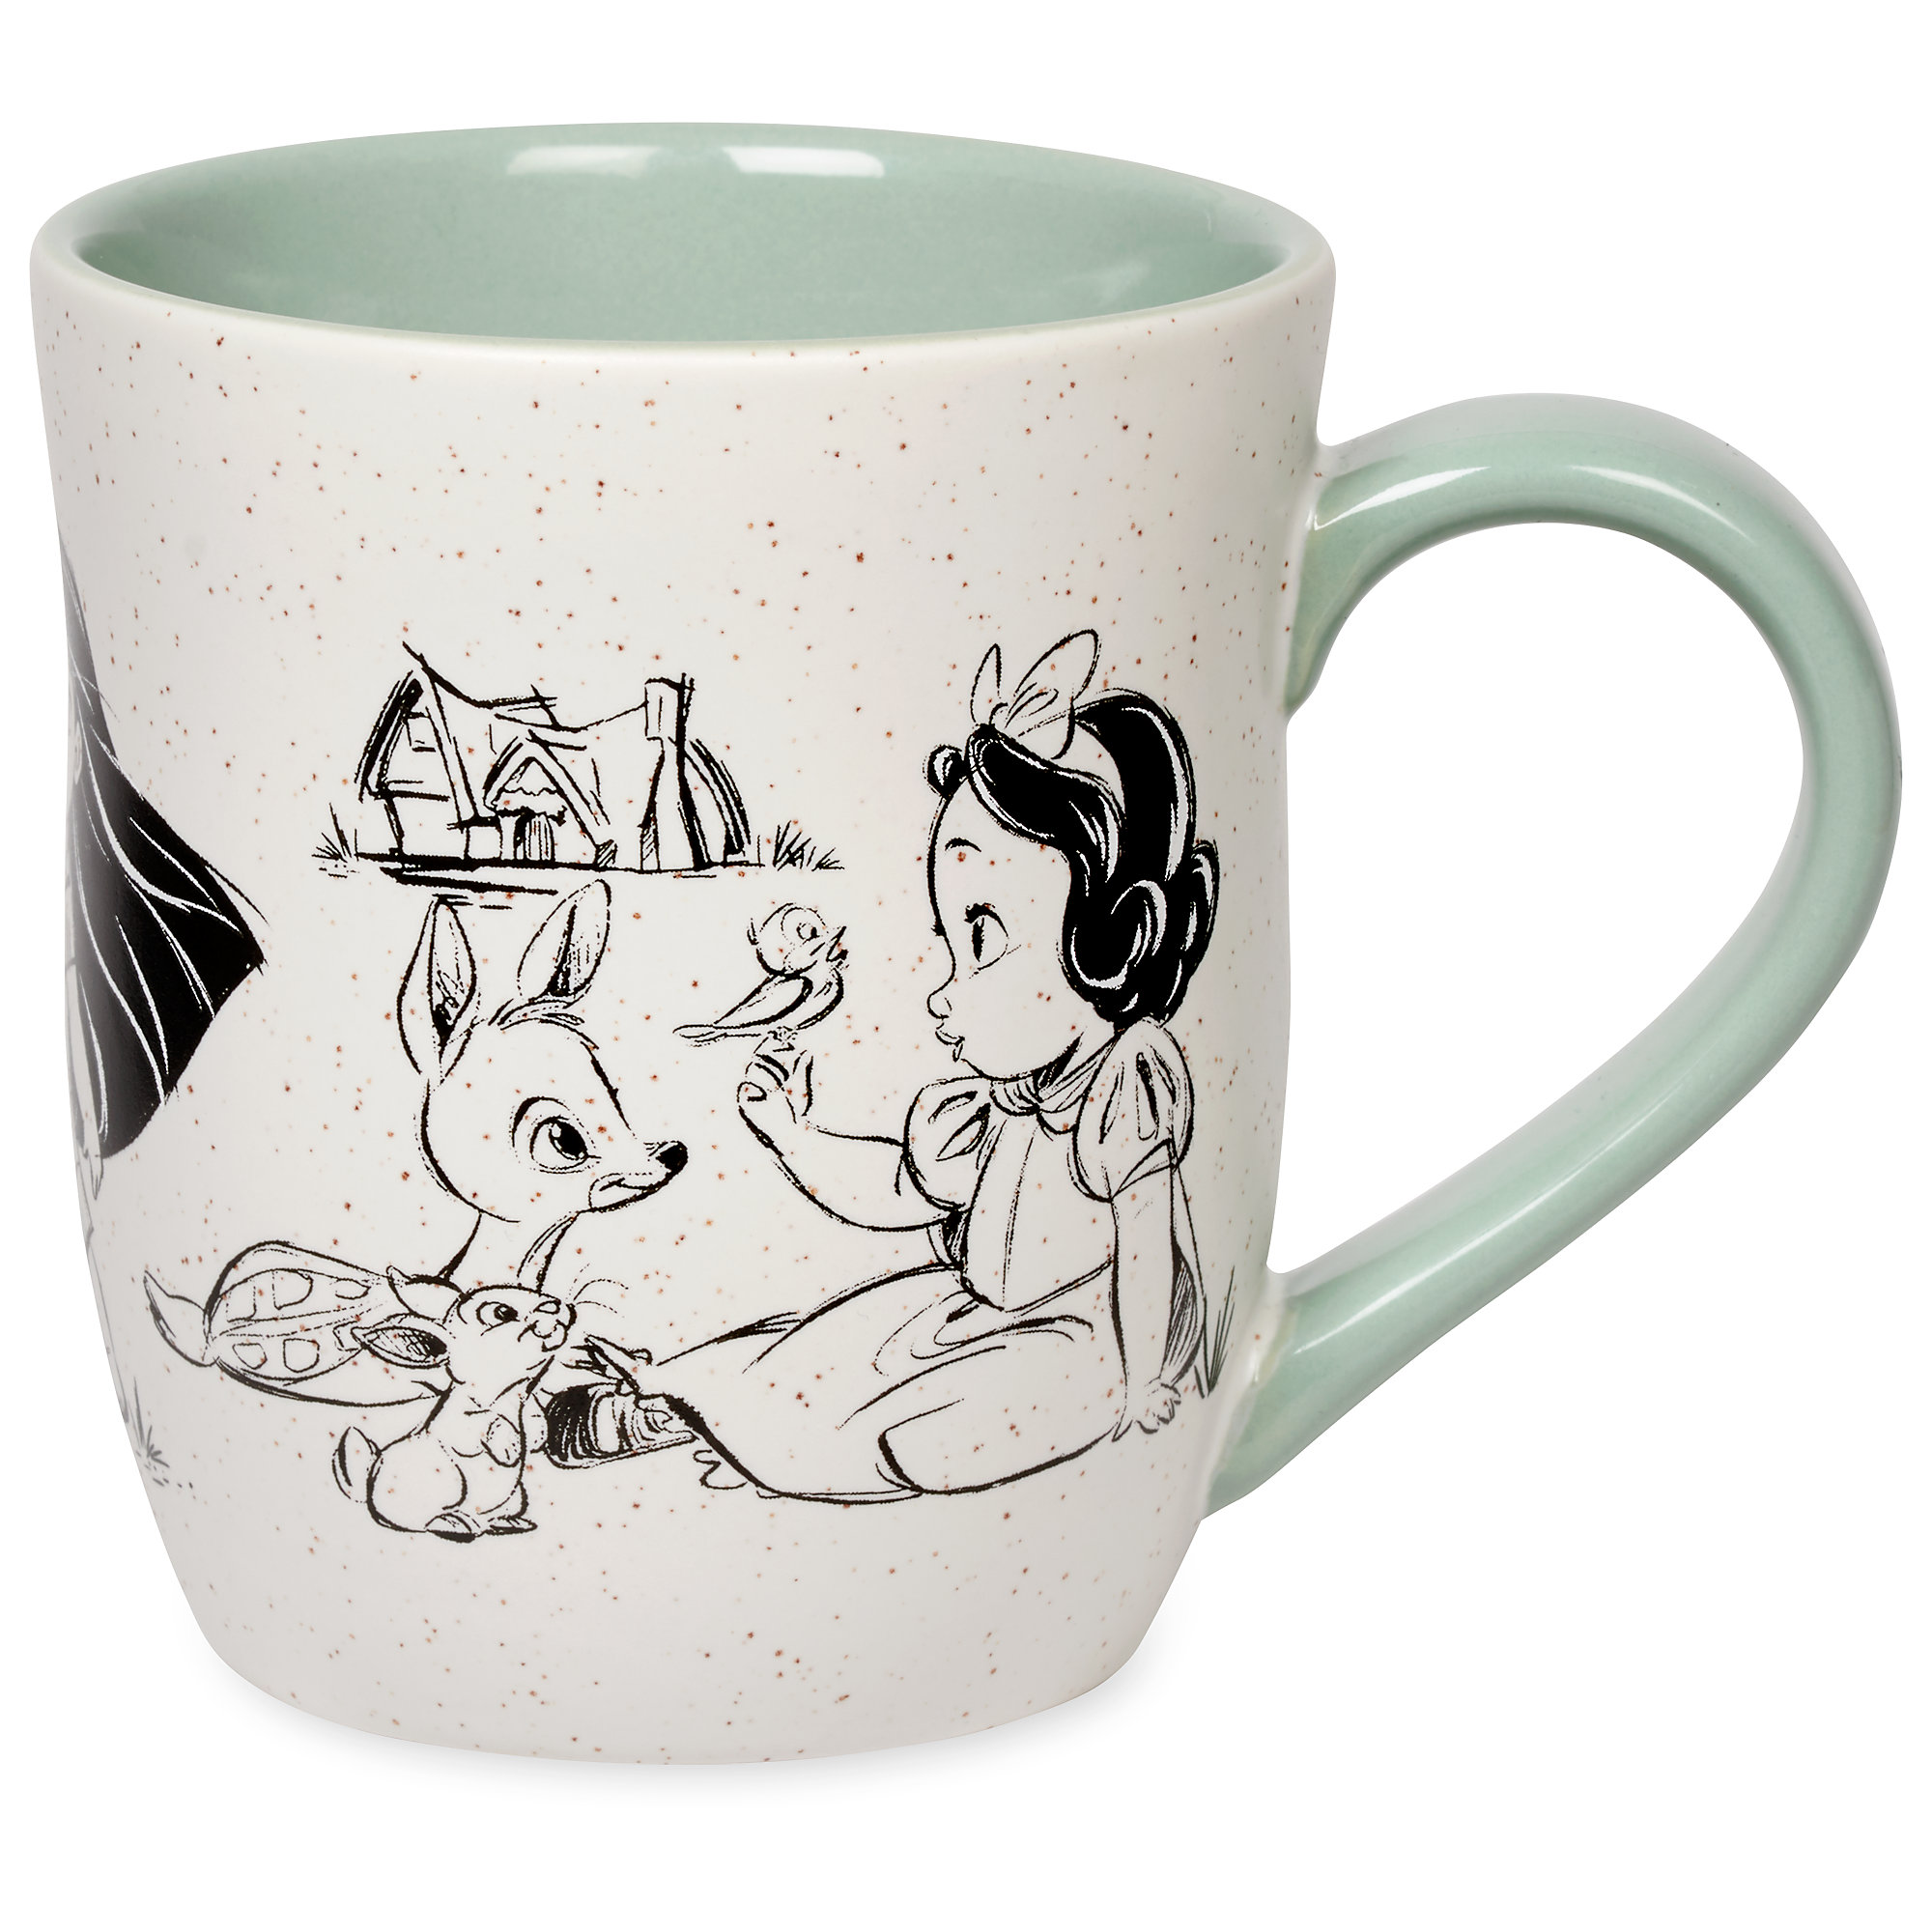 Disney Animators' Collection Disney Princess Mug